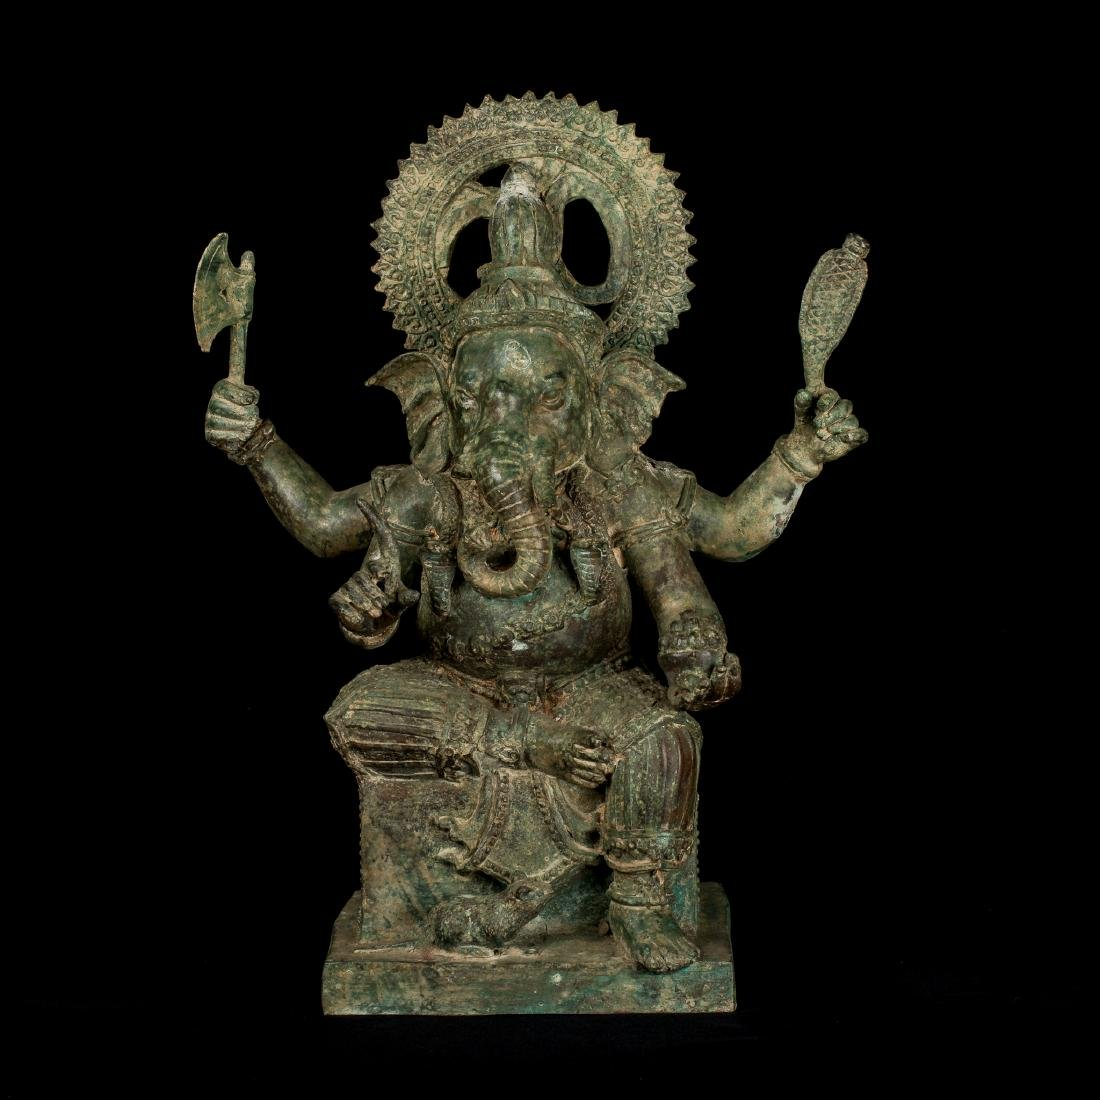 19th Century Antique Seated Bronze Ganesha Statue